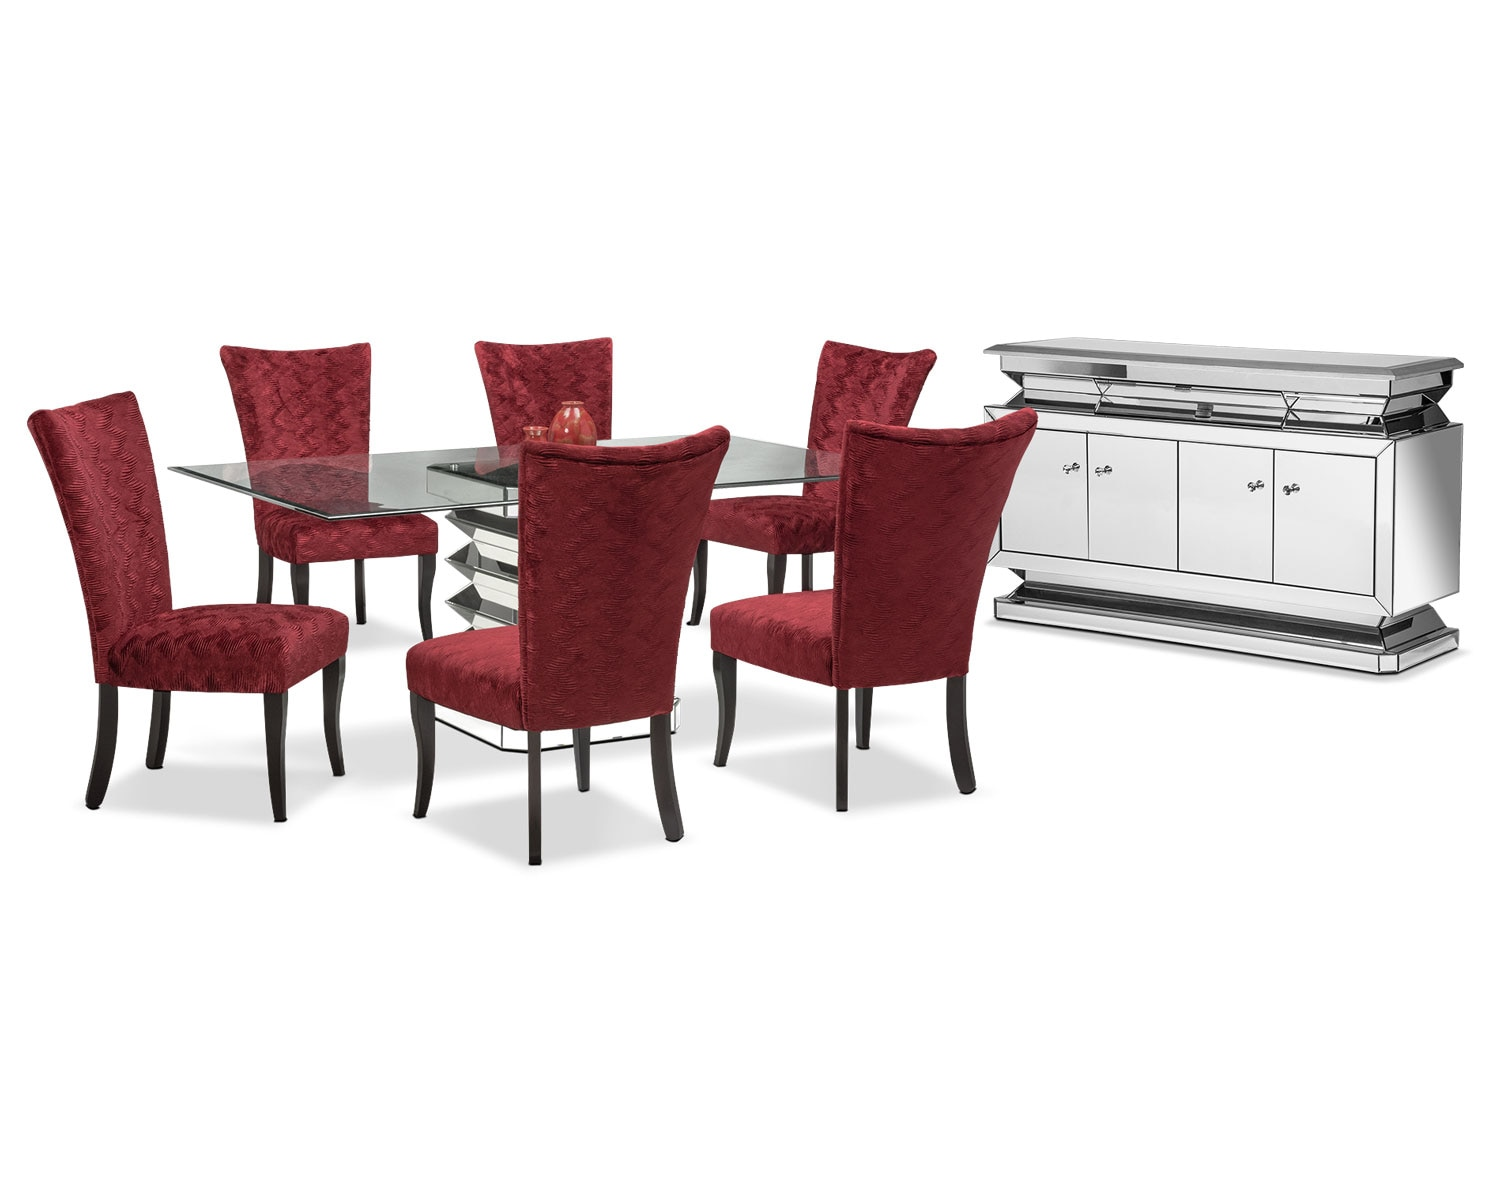 The Vibrato Collection - Red